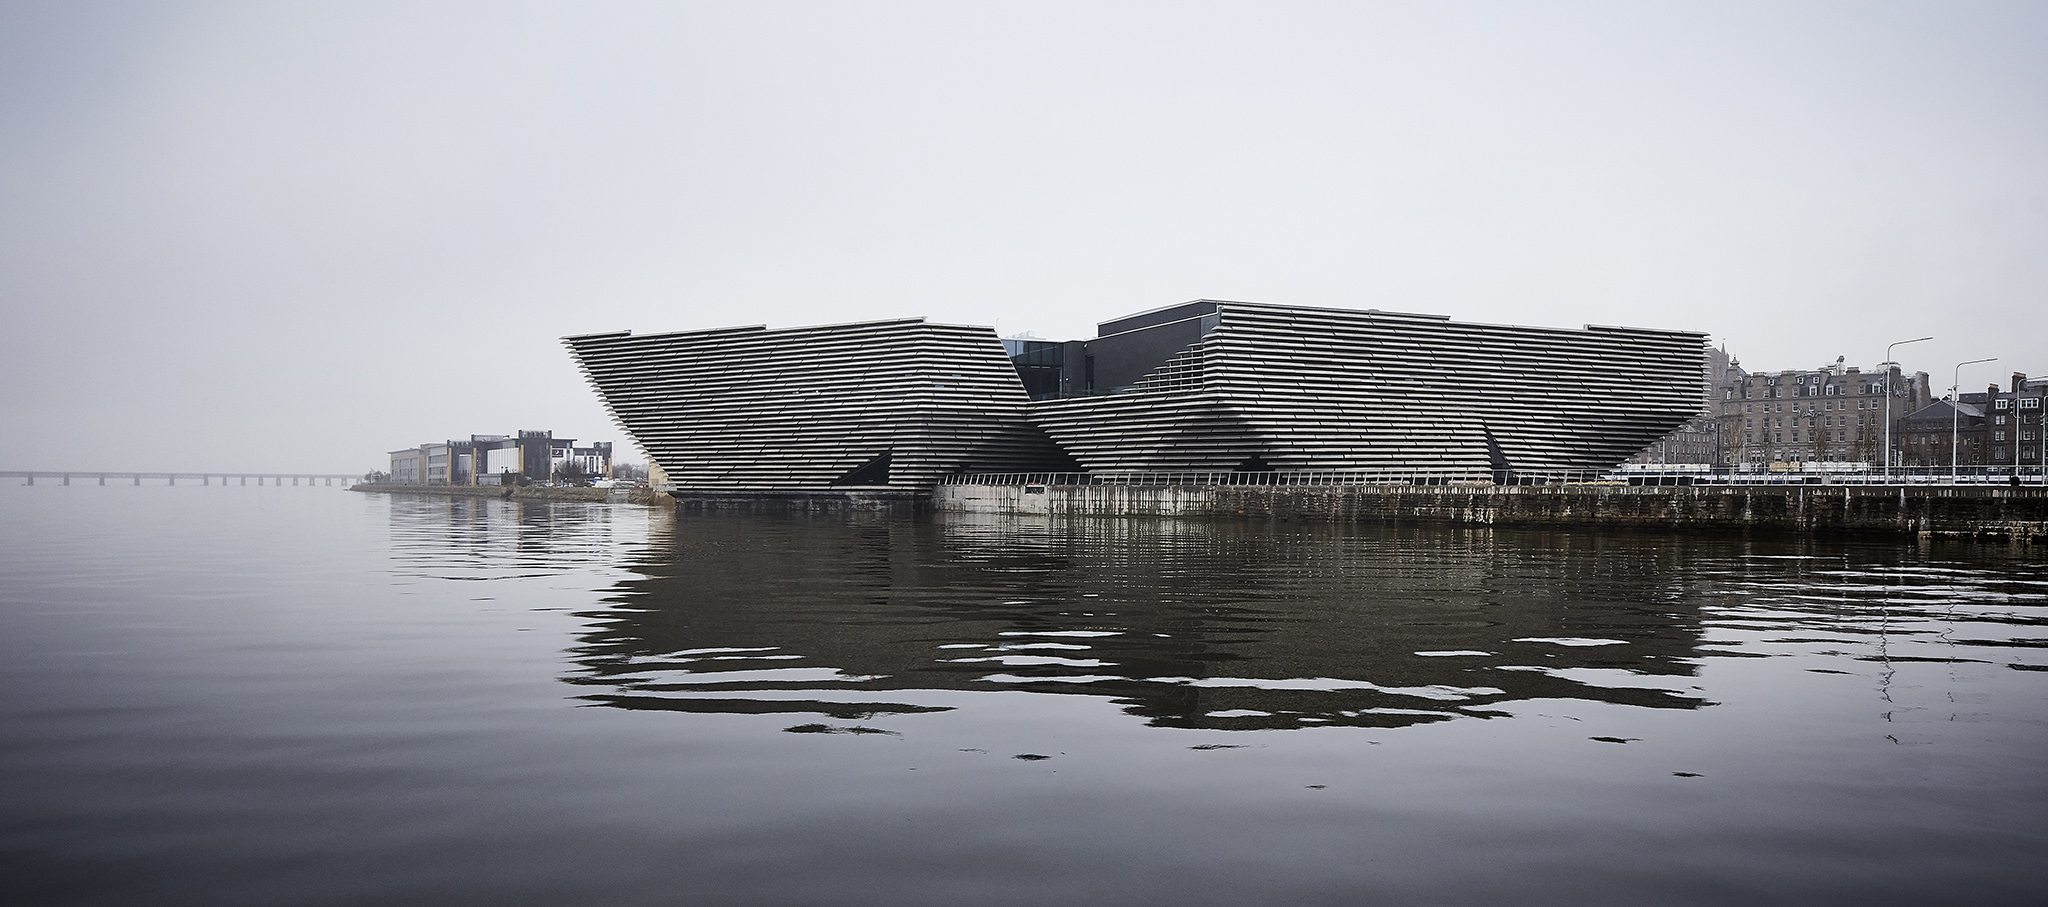 V&A Dundee Museum by Kengo Kuma. Photograph by Hufton + Crow